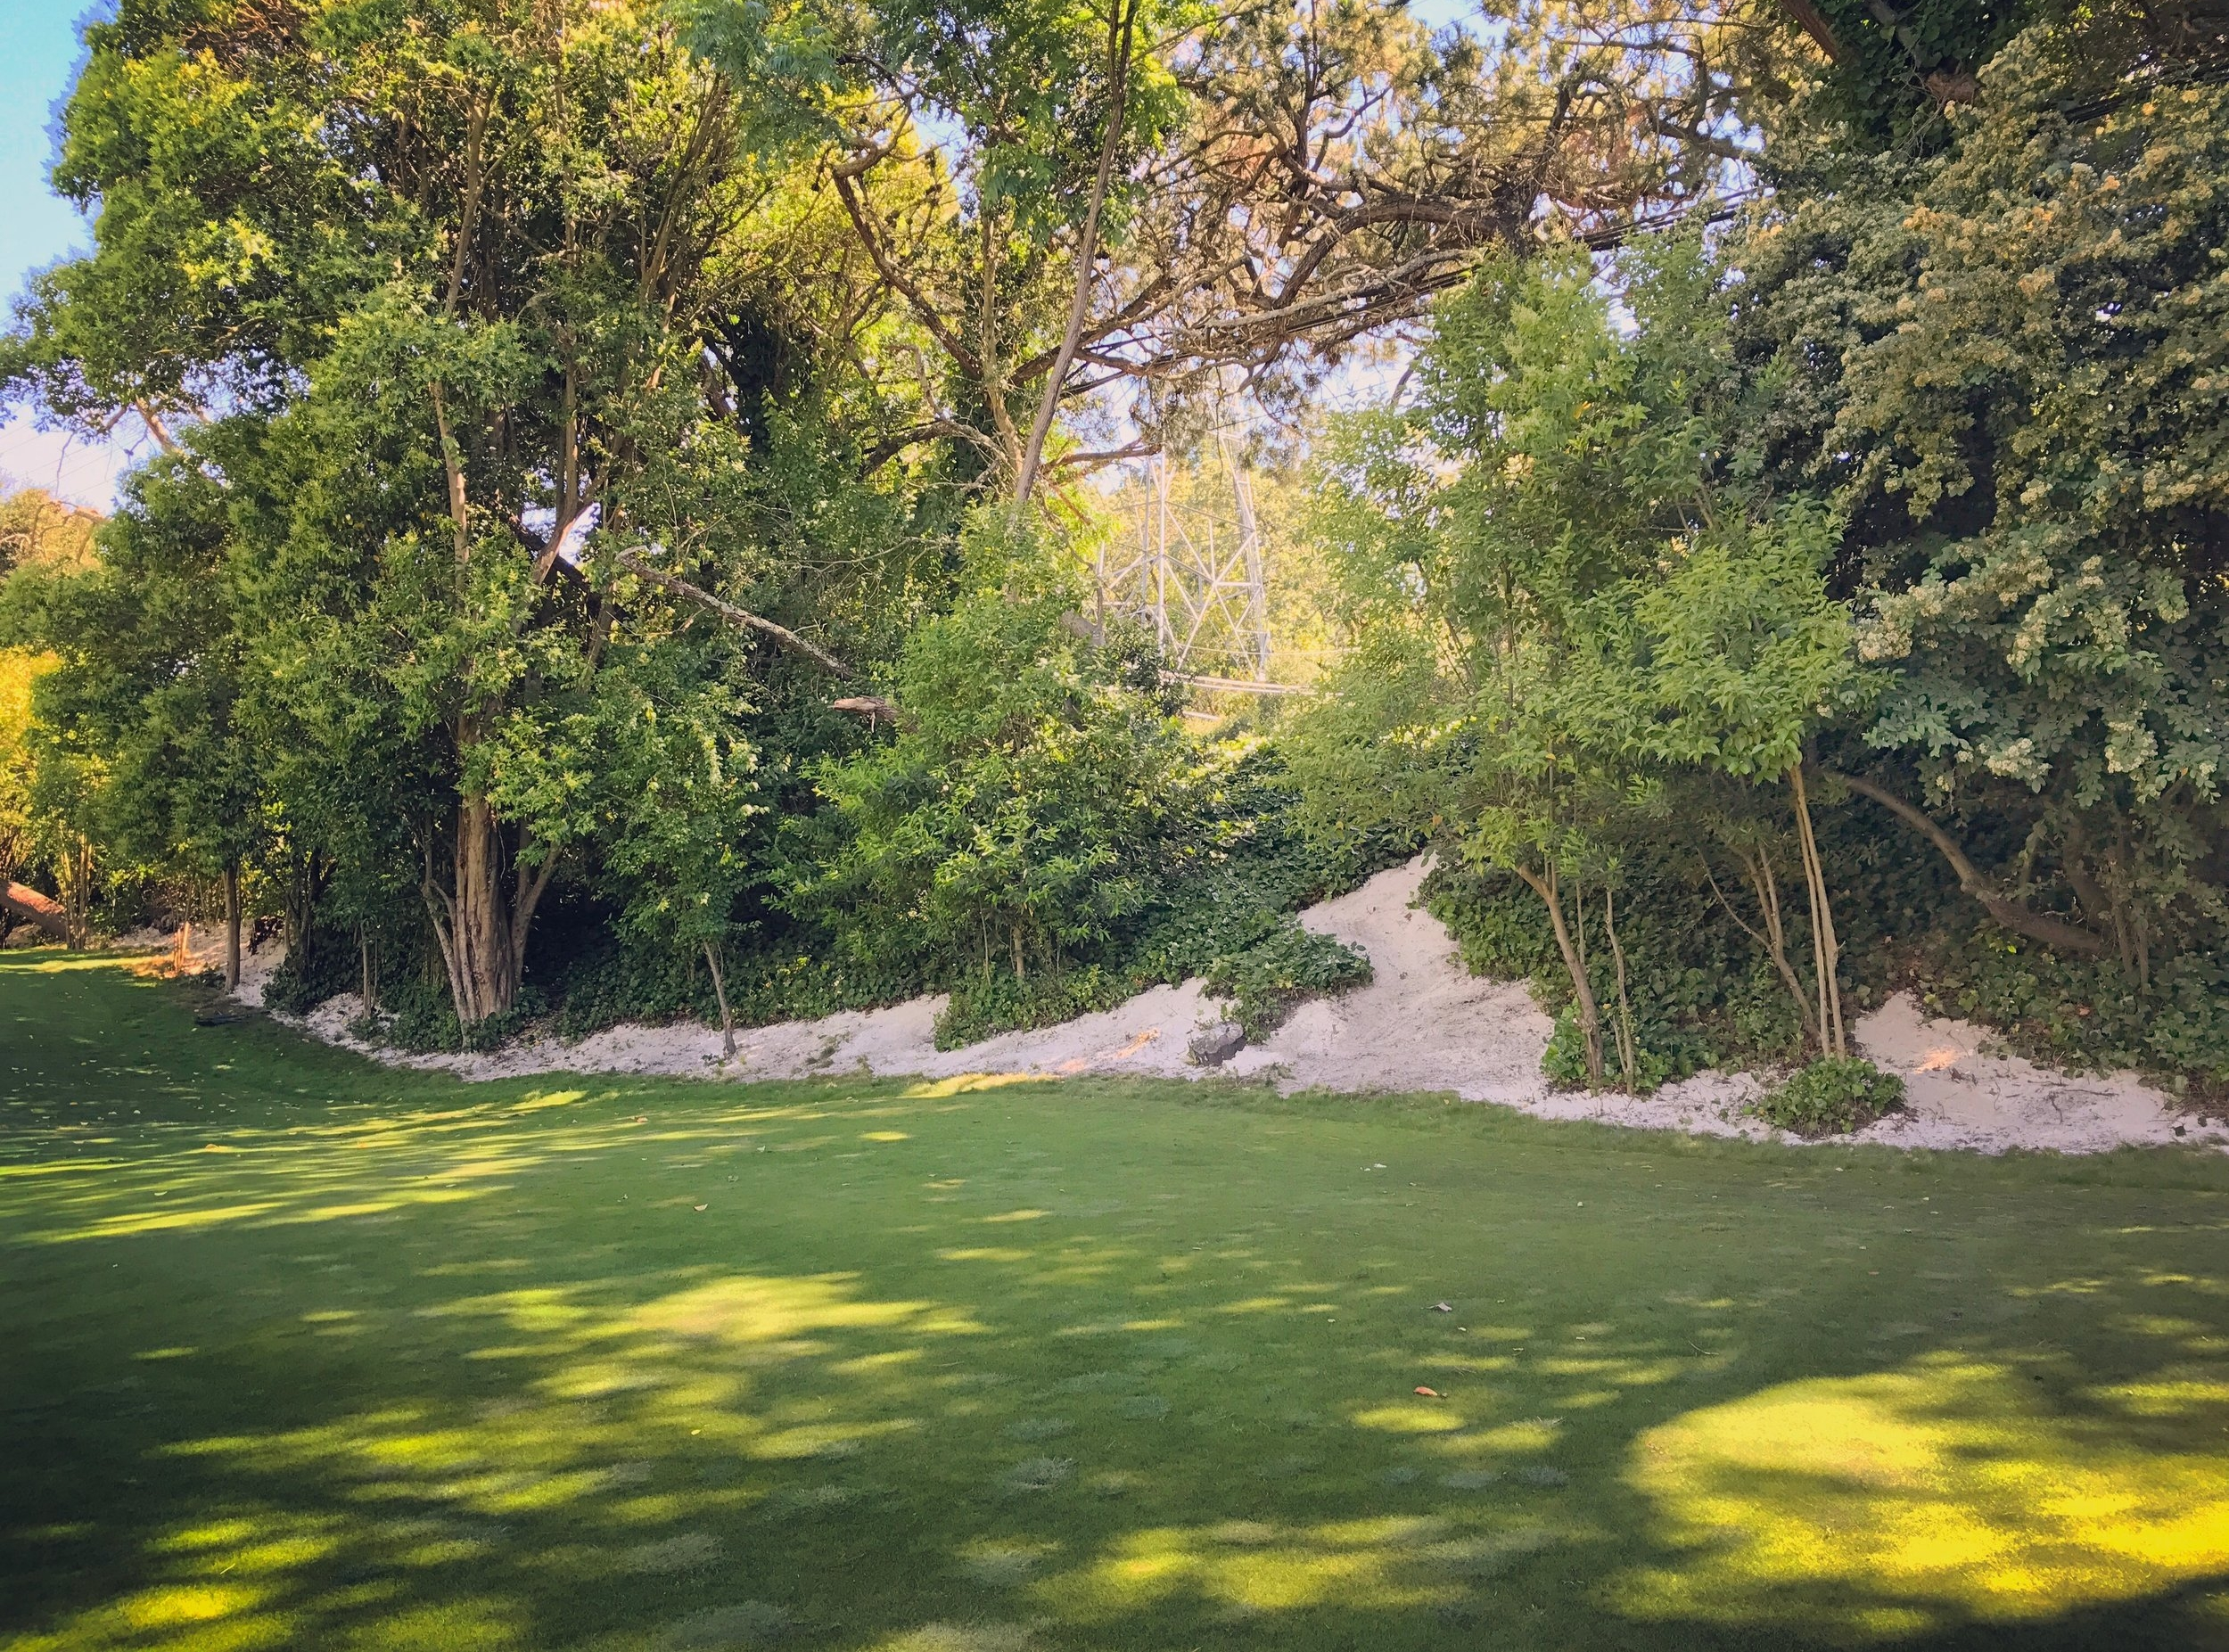 We had the opportunity this summer to go back and touch up this natural area on the 15th at Orinda, which used to be an ivy-covered fence and jungle.